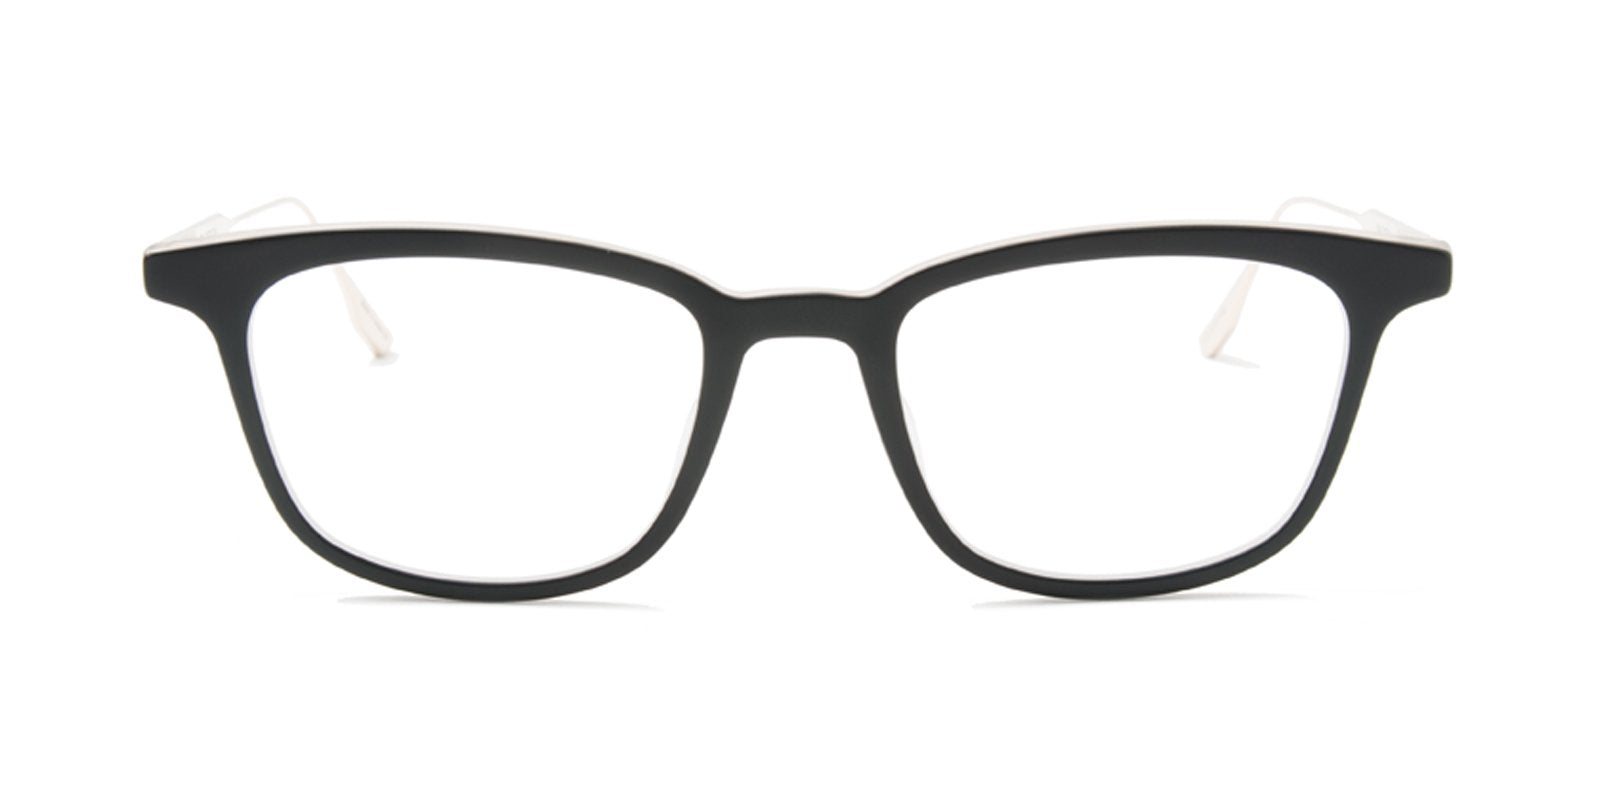 Dita - Floren Black Gold Rectangular Unisex Eyeglasses - 52mm-Eyeglasses-Designer Eyes